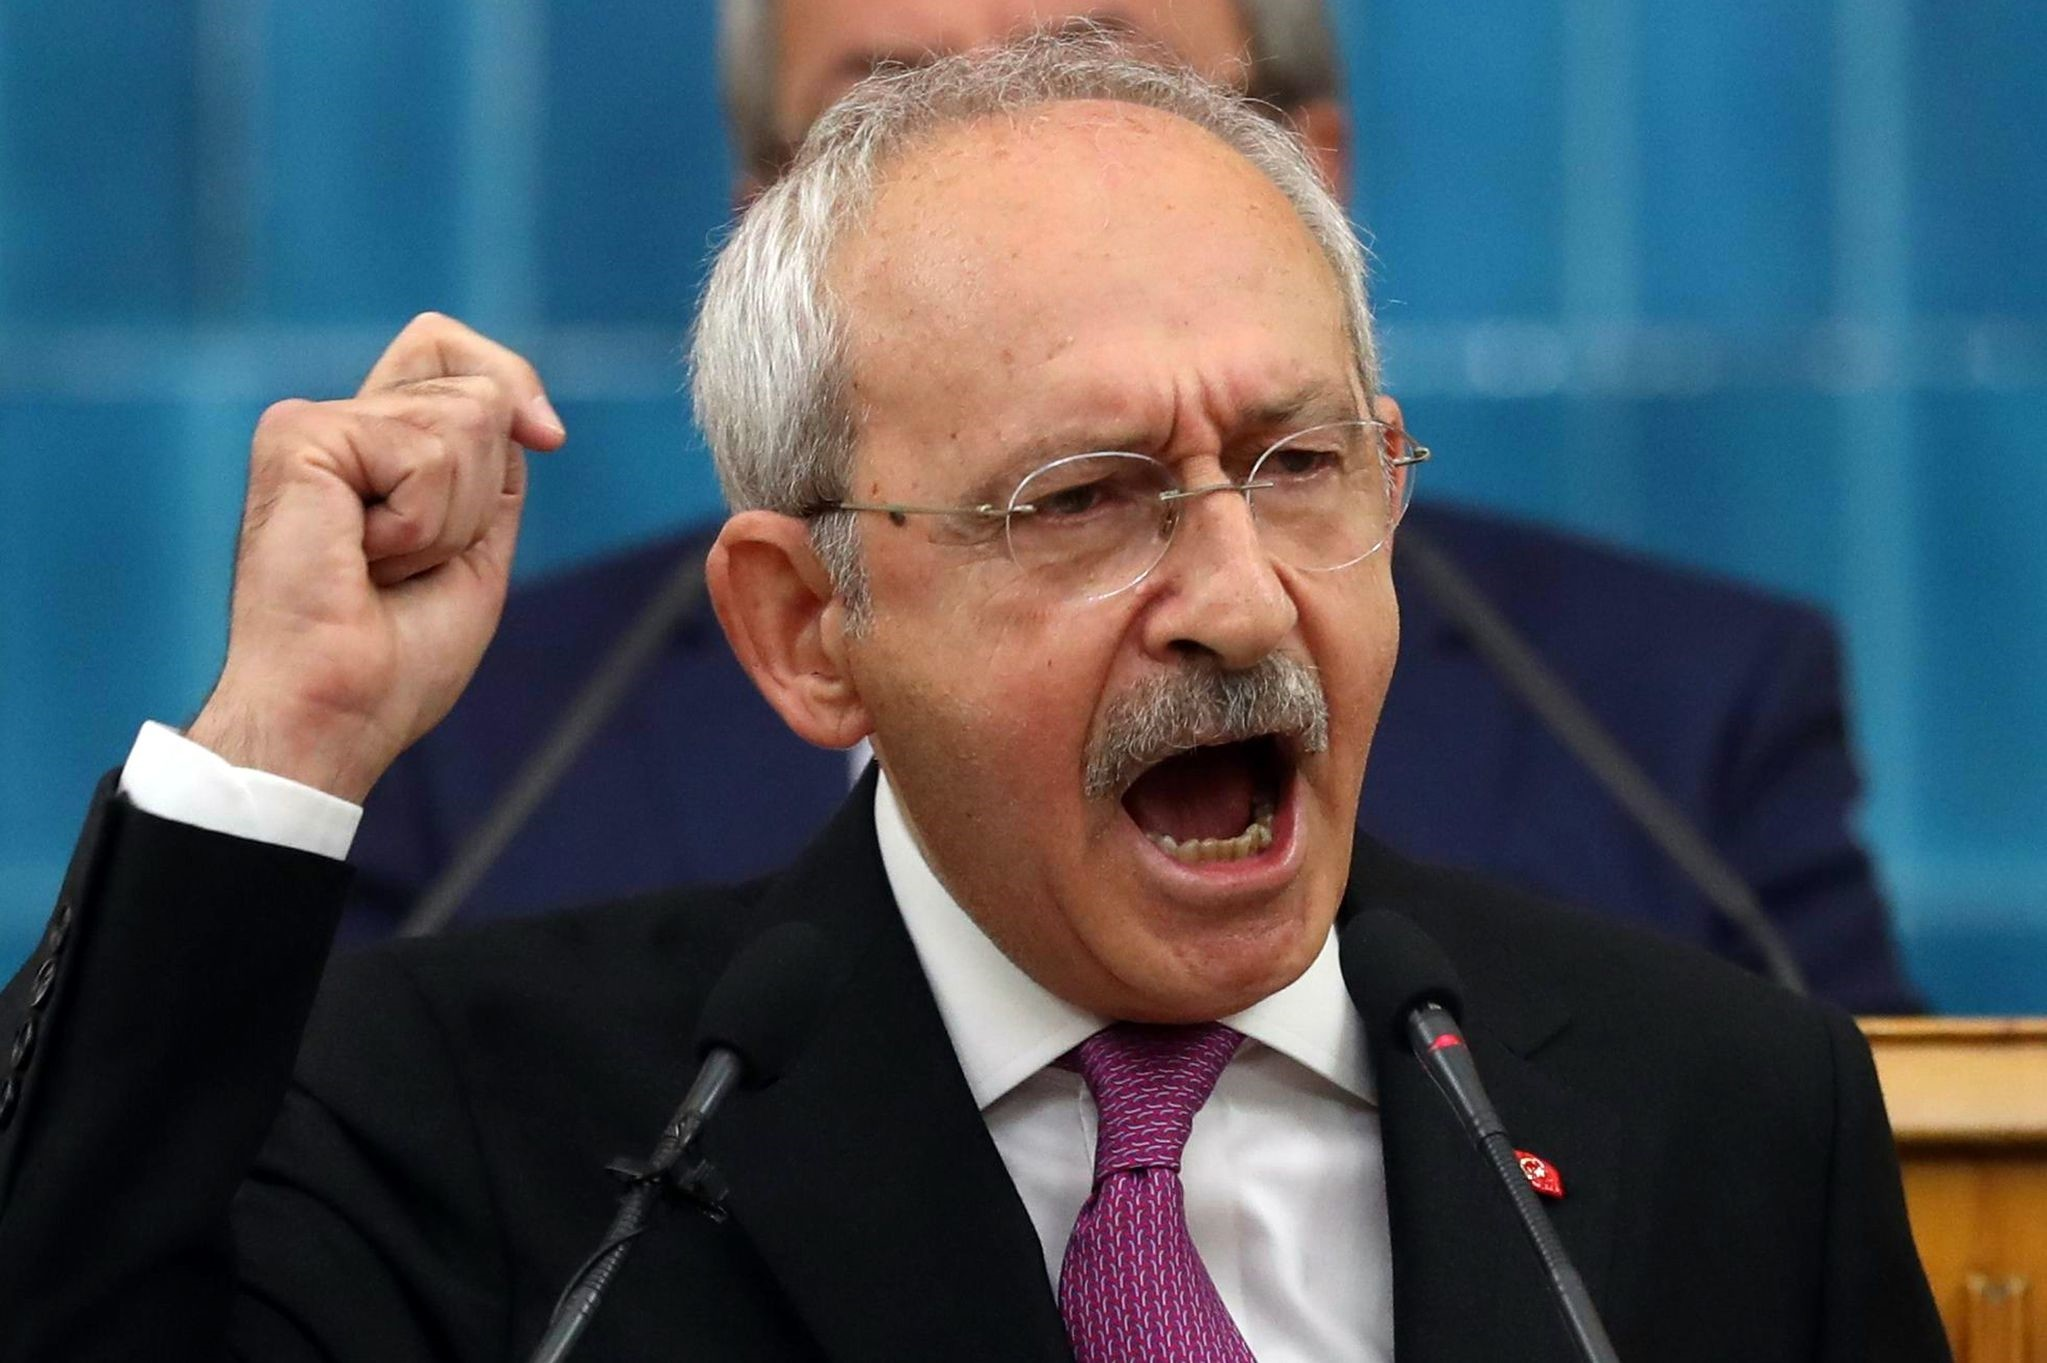 CHP Chairman Kemal Ku0131lu0131u00e7darou011flu gestures as he delivers a speech during his partyu2019s parliamentary group meeting in Ankara, March 27